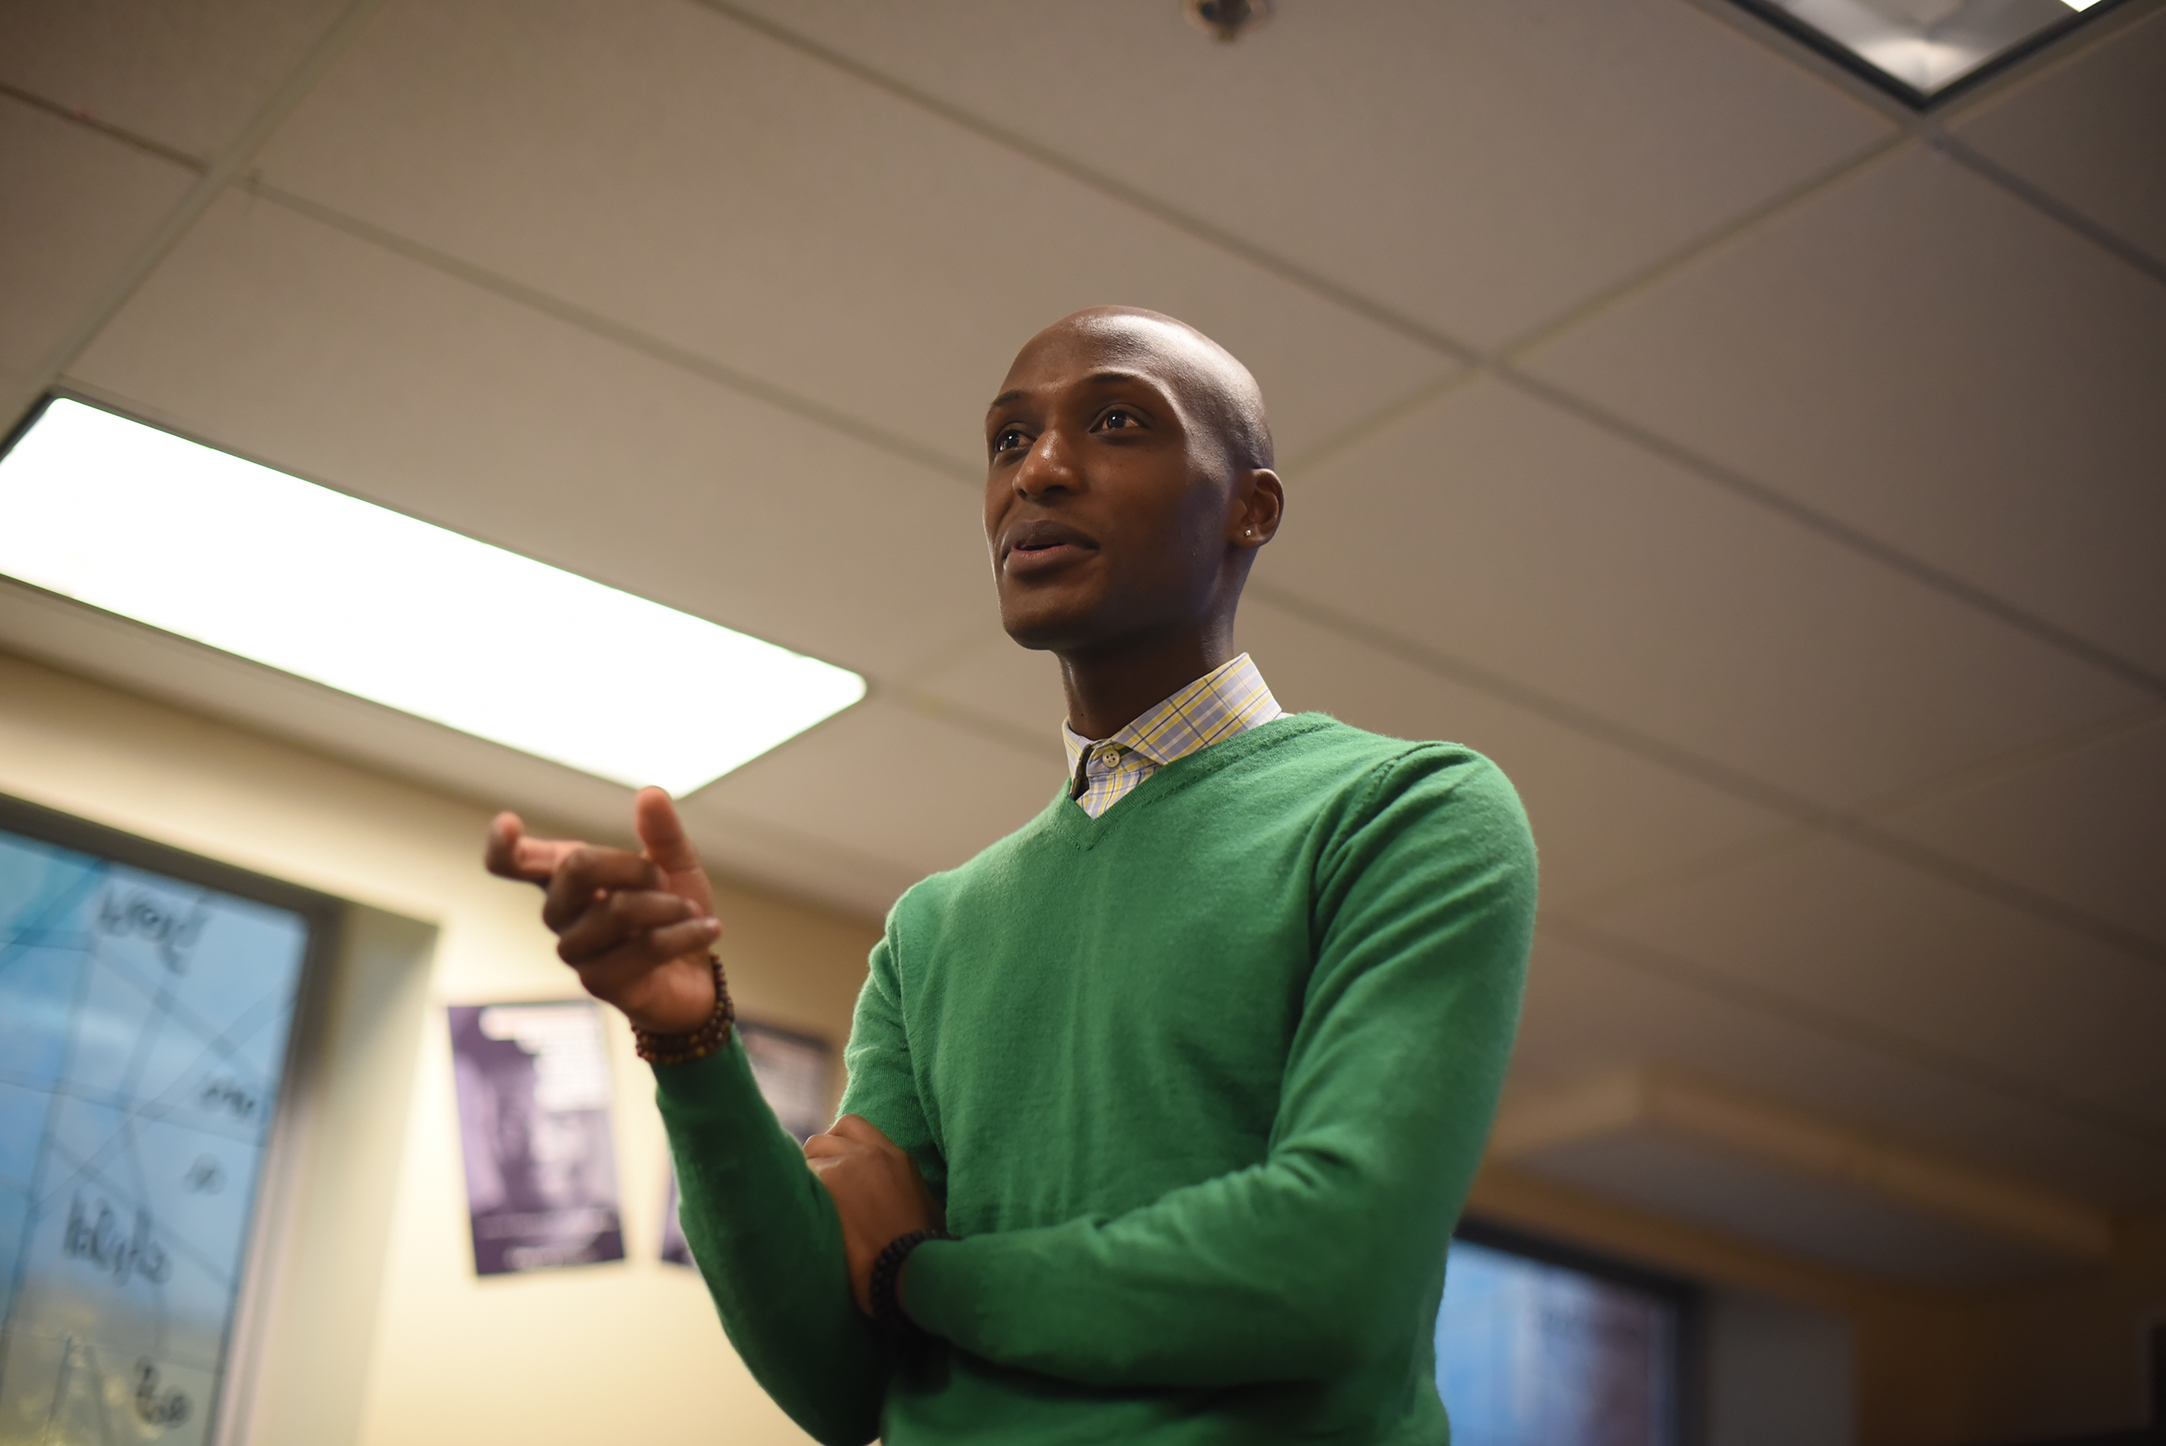 Daniel Trust, a survivor of the Rwandan Genocide, is seen speaking at the Rainbow Center in UConn's Student Union in Storrs, Connecticut, on Thursday, Nov. 19, 2015.Trust eventually immigrated to America, graduating from Bassick High School in Bridgeport and then from Southern Connecticut State University. (Allen Lang/The Daily Campus)